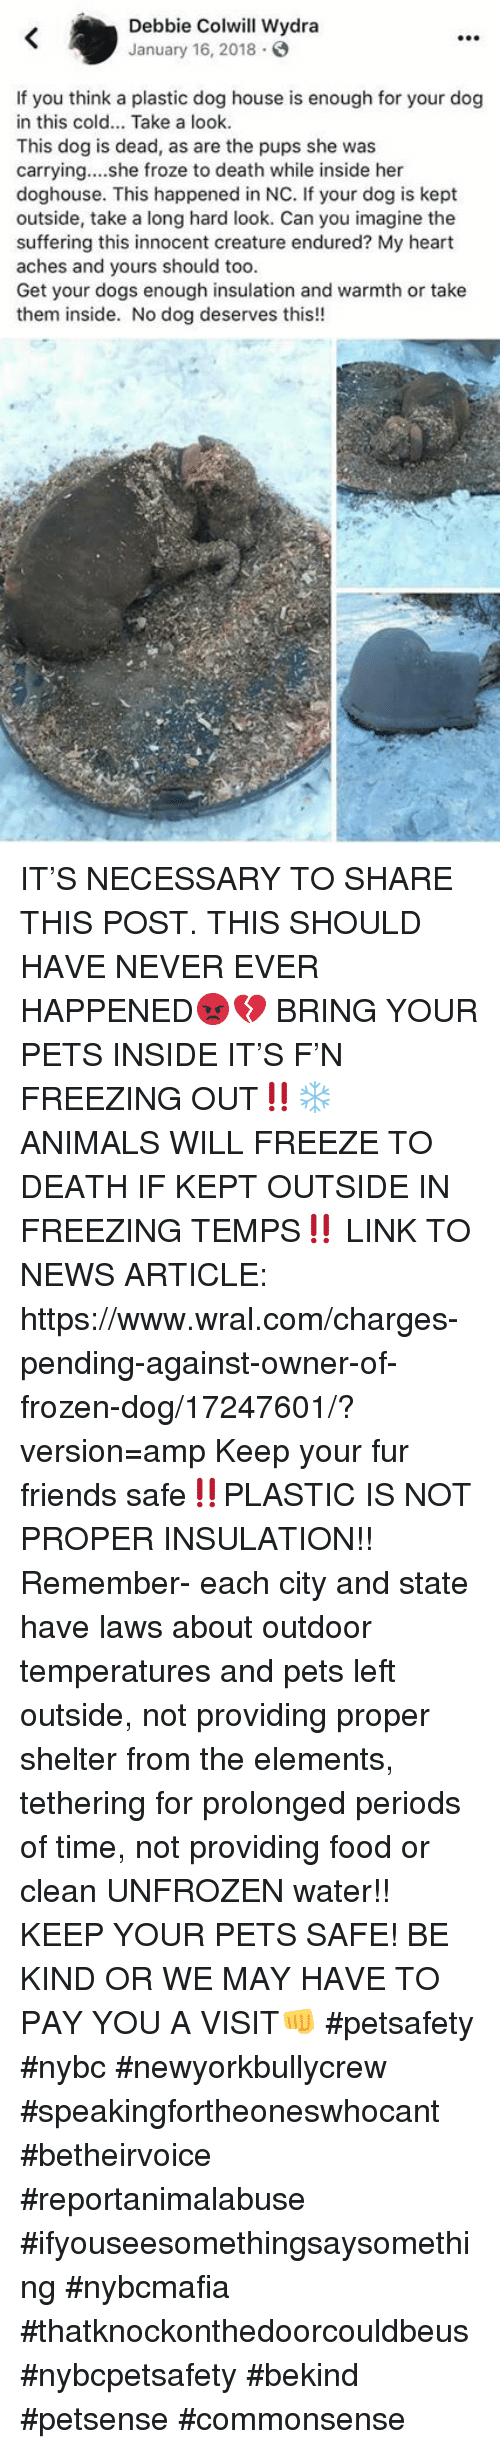 Animals, Dogs, and Food: Debbie Colwill Wydra  January 16, 2018.  If you think a plastic dog house is enough for your dog  in this cold... Take a look.  This dog is dead, as are the pups she was  carrying....she froze to death while inside her  doghouse. This happened in NC. If your dog is kept  outside, take a long hard look. Can you imagine the  suffering this innocent creature endured? My heart  aches and yours should too.  Get your dogs enough insulation and warmth or take  them inside. No dog deserves this!! IT'S NECESSARY TO SHARE THIS POST. THIS SHOULD HAVE NEVER EVER HAPPENED😡💔  BRING YOUR PETS INSIDE IT'S F'N FREEZING OUT‼️❄️ ANIMALS WILL FREEZE TO DEATH IF KEPT OUTSIDE IN FREEZING TEMPS‼️ LINK TO NEWS ARTICLE: https://www.wral.com/charges-pending-against-owner-of-frozen-dog/17247601/?version=amp Keep your fur friends safe‼️PLASTIC IS NOT PROPER INSULATION!! Remember- each city and state have laws about outdoor temperatures and pets left outside, not providing proper shelter from the elements, tethering for prolonged periods of time, not providing food or clean UNFROZEN water!! KEEP YOUR PETS SAFE! BE KIND OR WE MAY HAVE TO PAY YOU A VISIT👊  #petsafety #nybc #newyorkbullycrew #speakingfortheoneswhocant #betheirvoice #reportanimalabuse #ifyouseesomethingsaysomething #nybcmafia #thatknockonthedoorcouldbeus #nybcpetsafety #bekind #petsense #commonsense